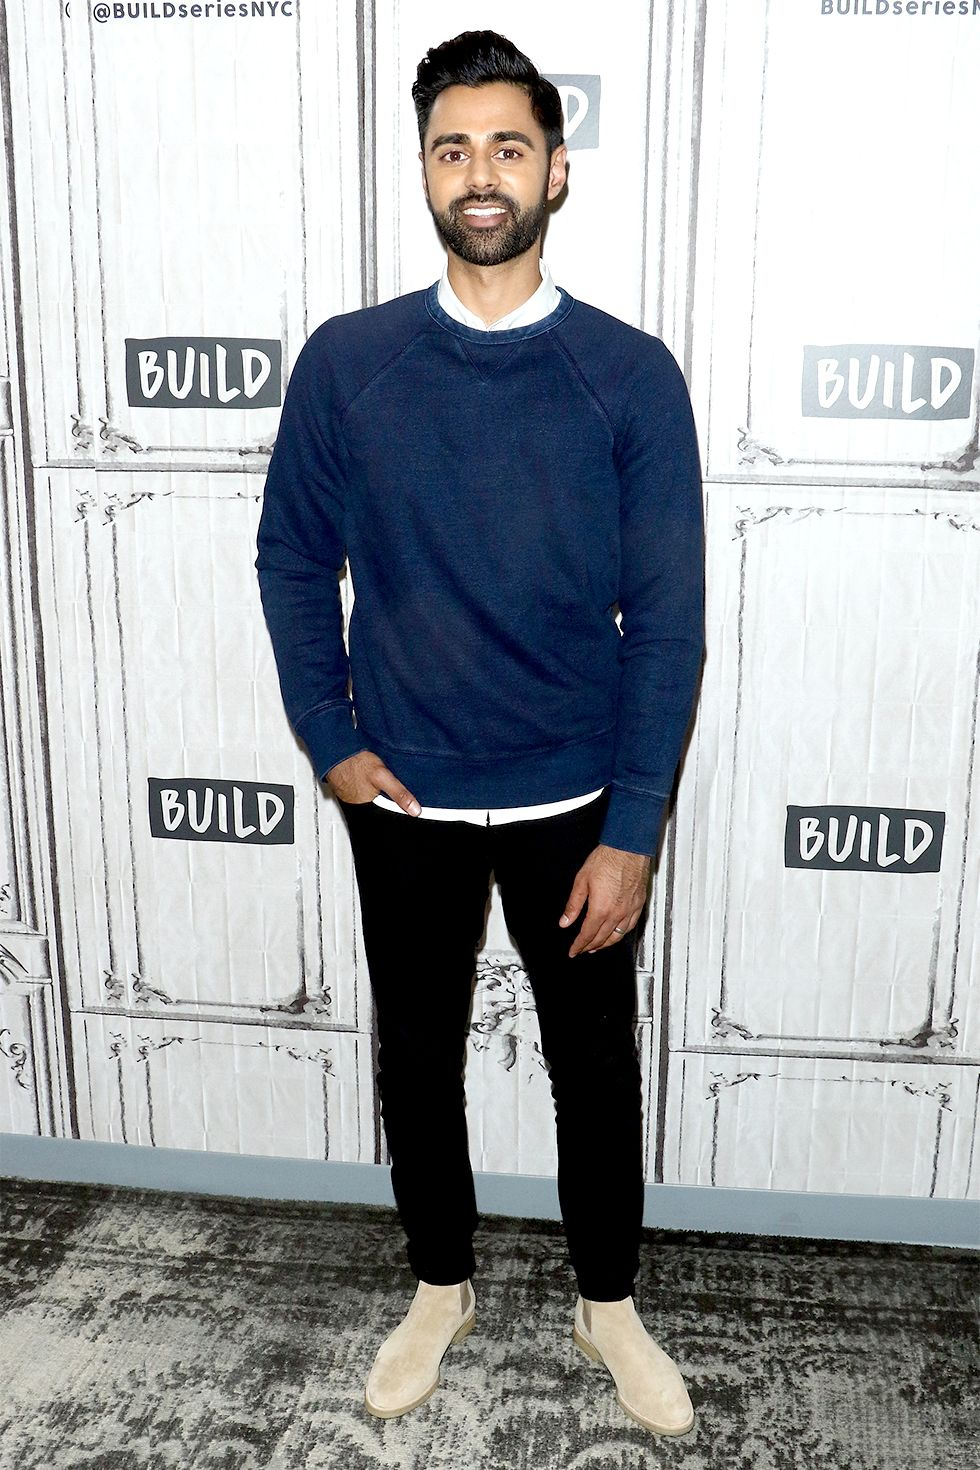 Hasan Minhaj Sand-colored Chelsea (or desert) boots are a great transition piece—you get the full coverage of a boot but the more spring-appropriate color.